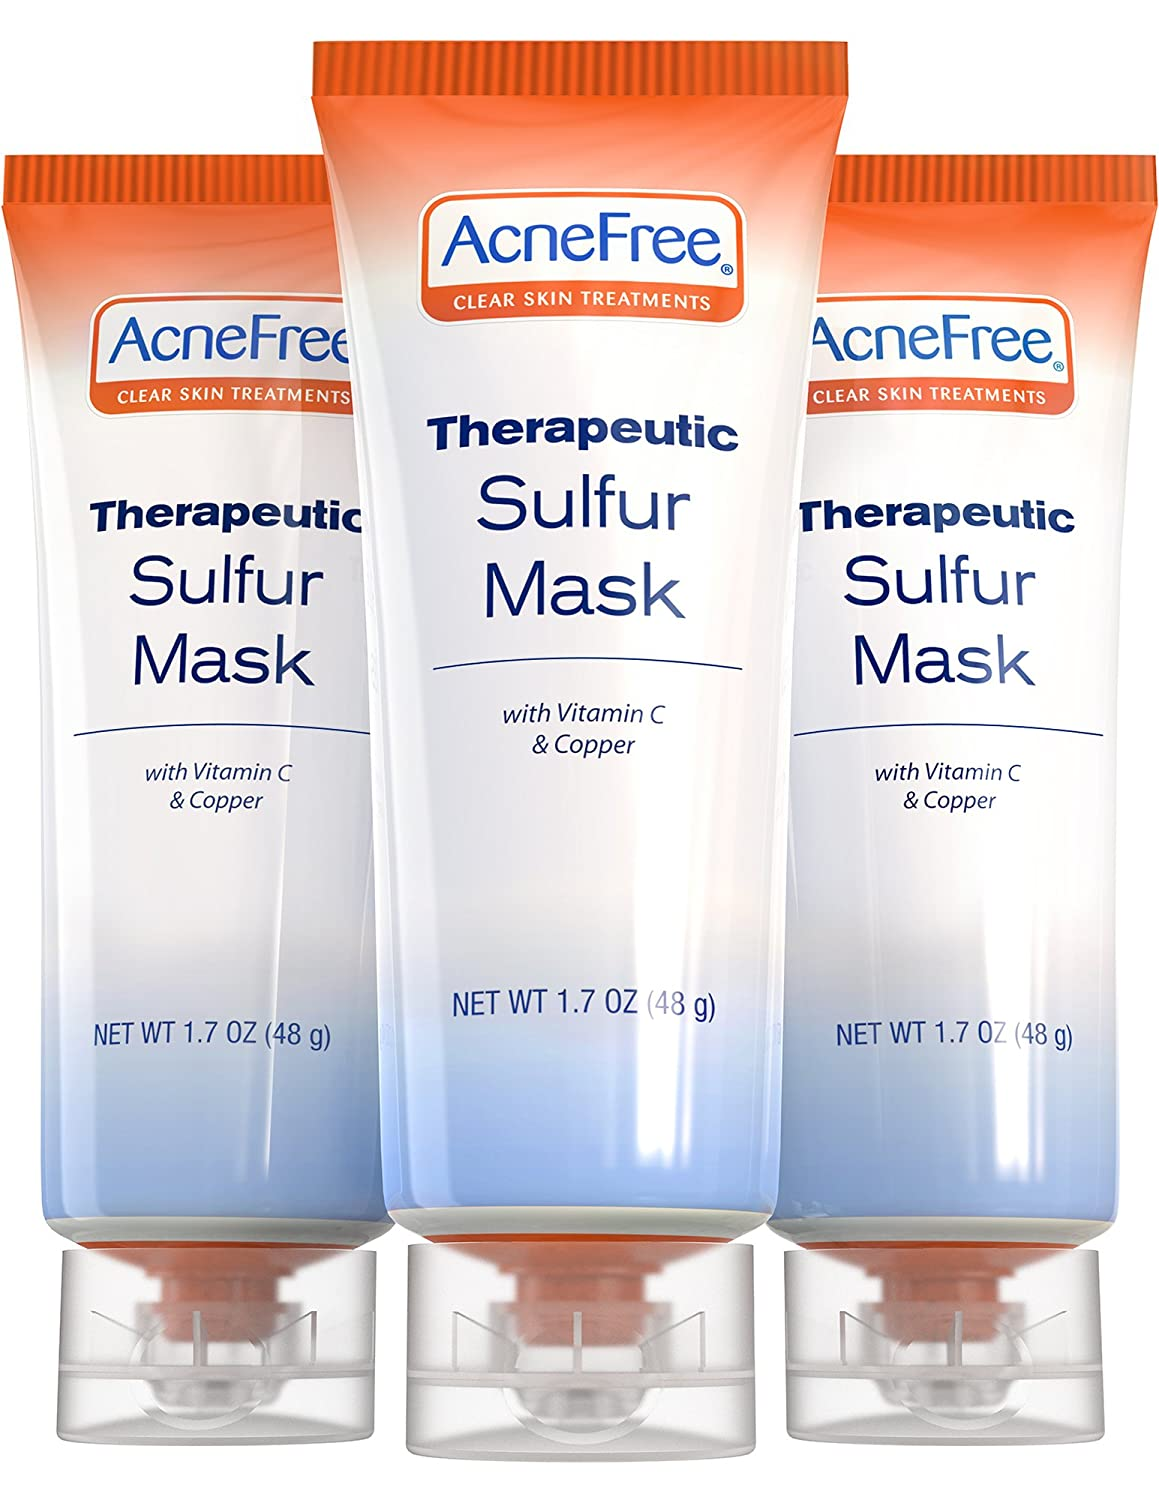 AcneFree Sulfur Mask 1.7 oz Three Pack Acne Treatment for Clearing Acne, Absorbing Excess Oil and Unclogging Pores with Vitamin C and Bentonite Clay